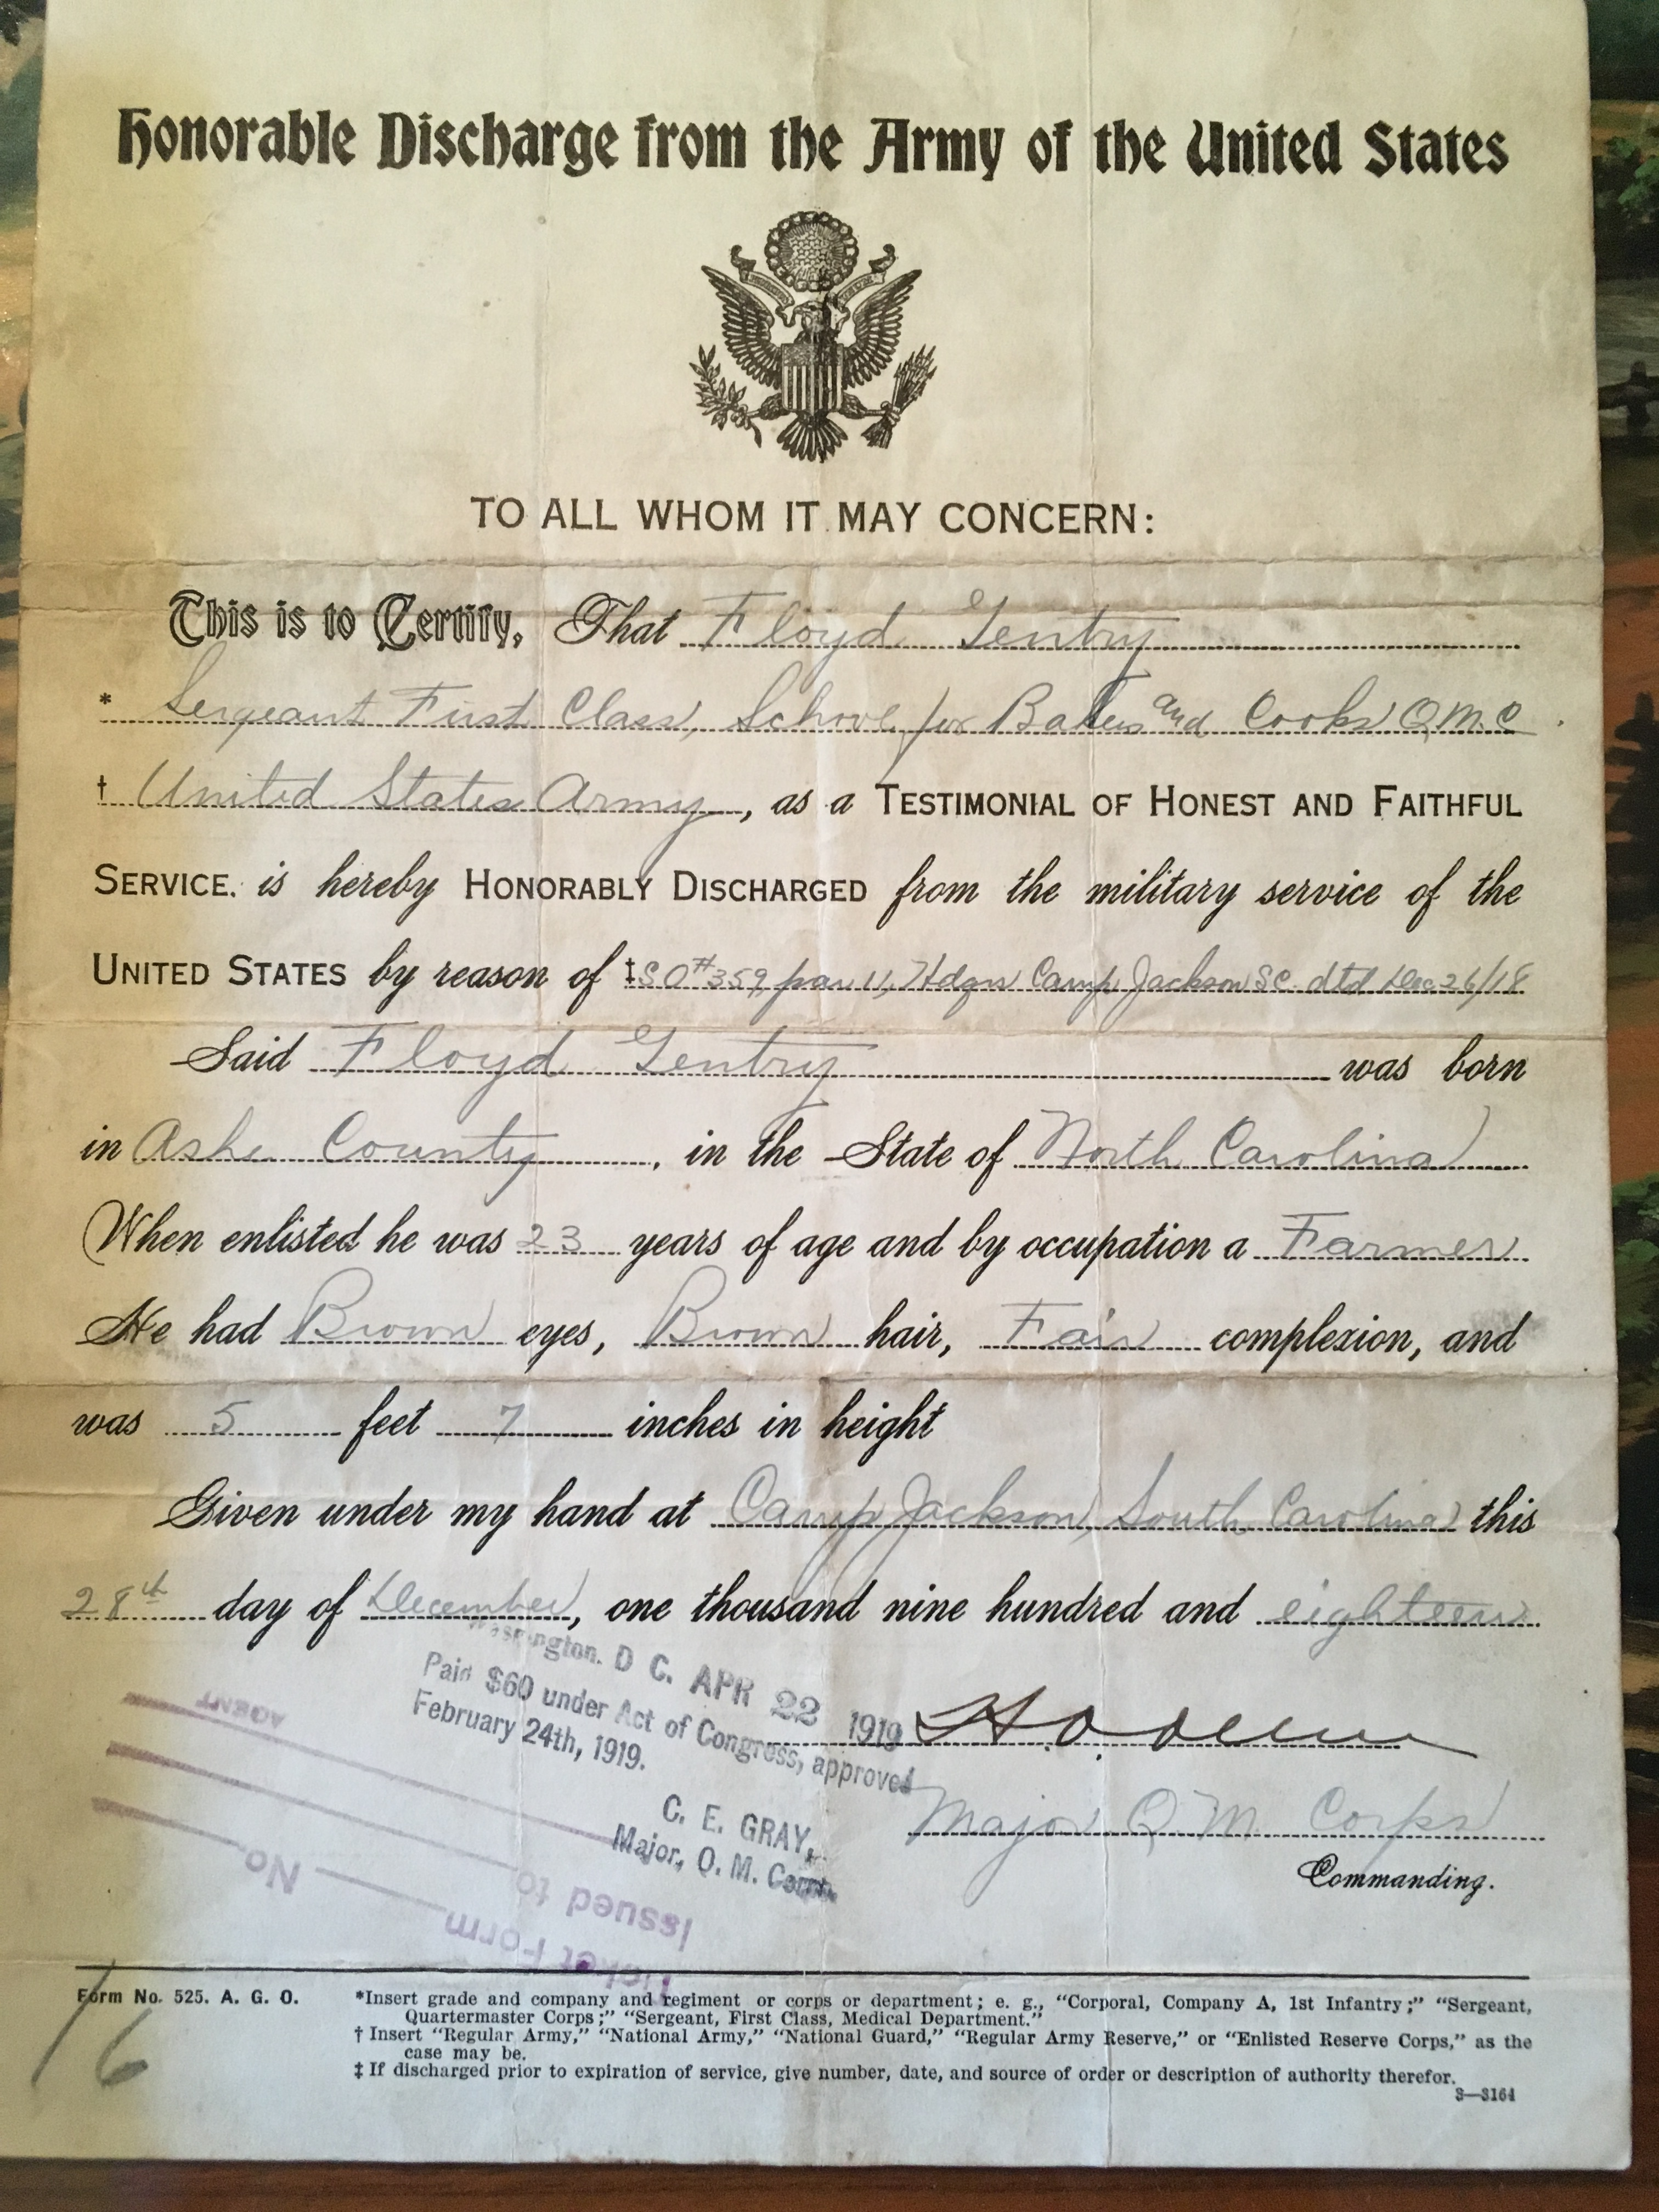 Floyd Gentry's Honorable Discharge papers